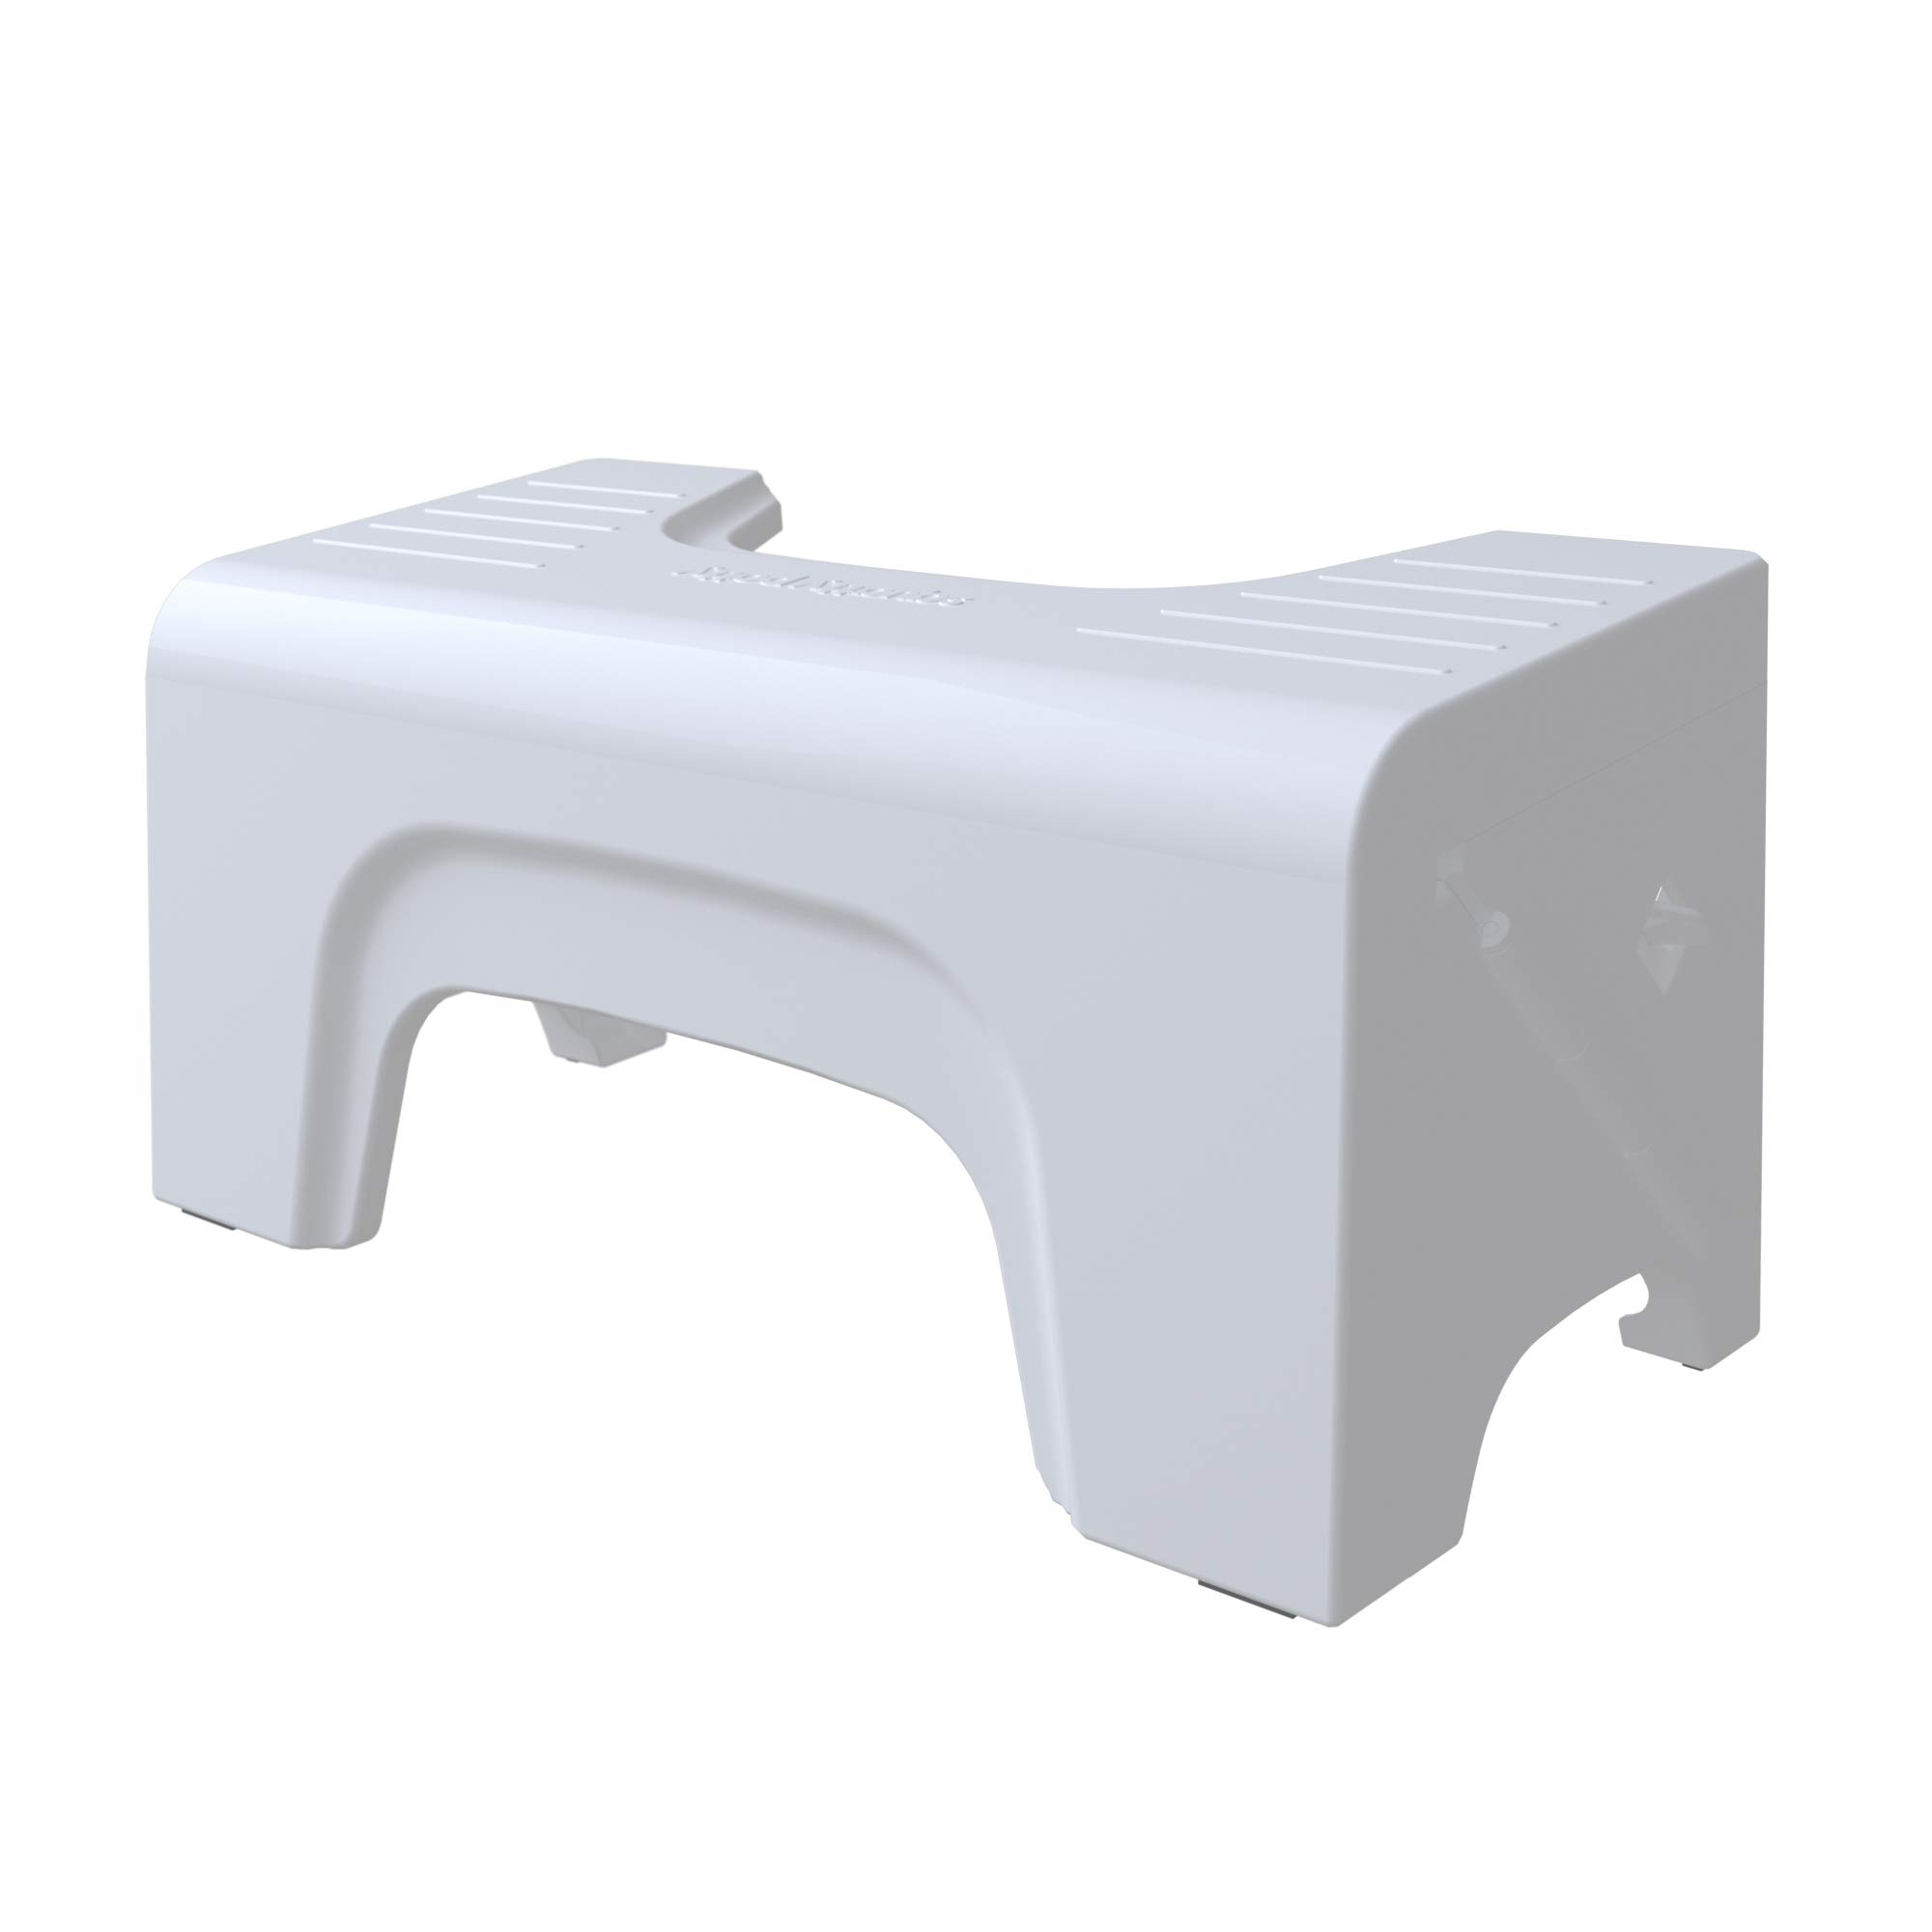 Squatty Potty Fold N Stow Compact Foldable Toilet Stool, White, 7'', 1 lb